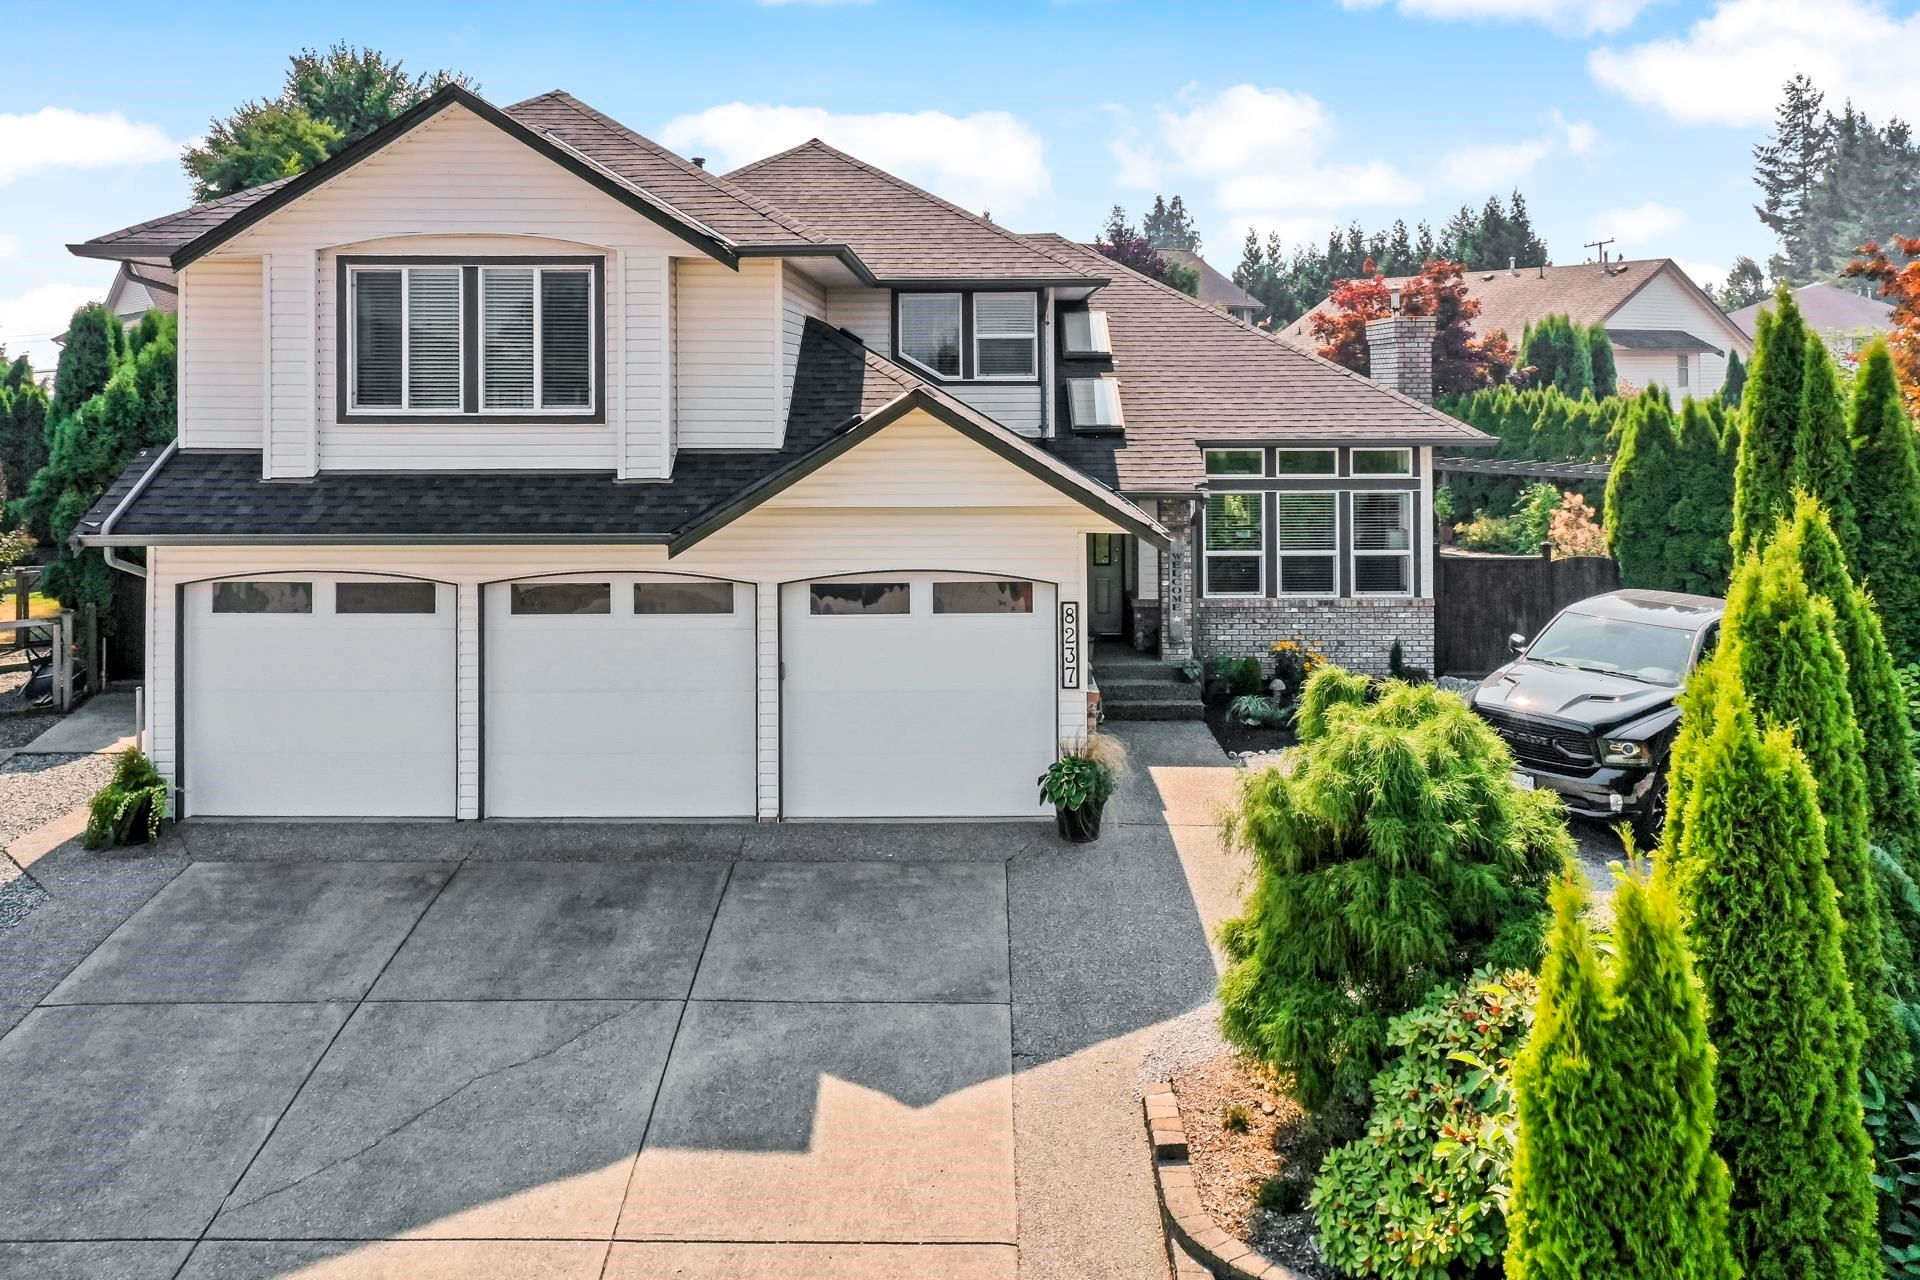 Main Photo: 8237 HAFFNER Terrace in Mission: Mission BC House for sale : MLS®# R2609150